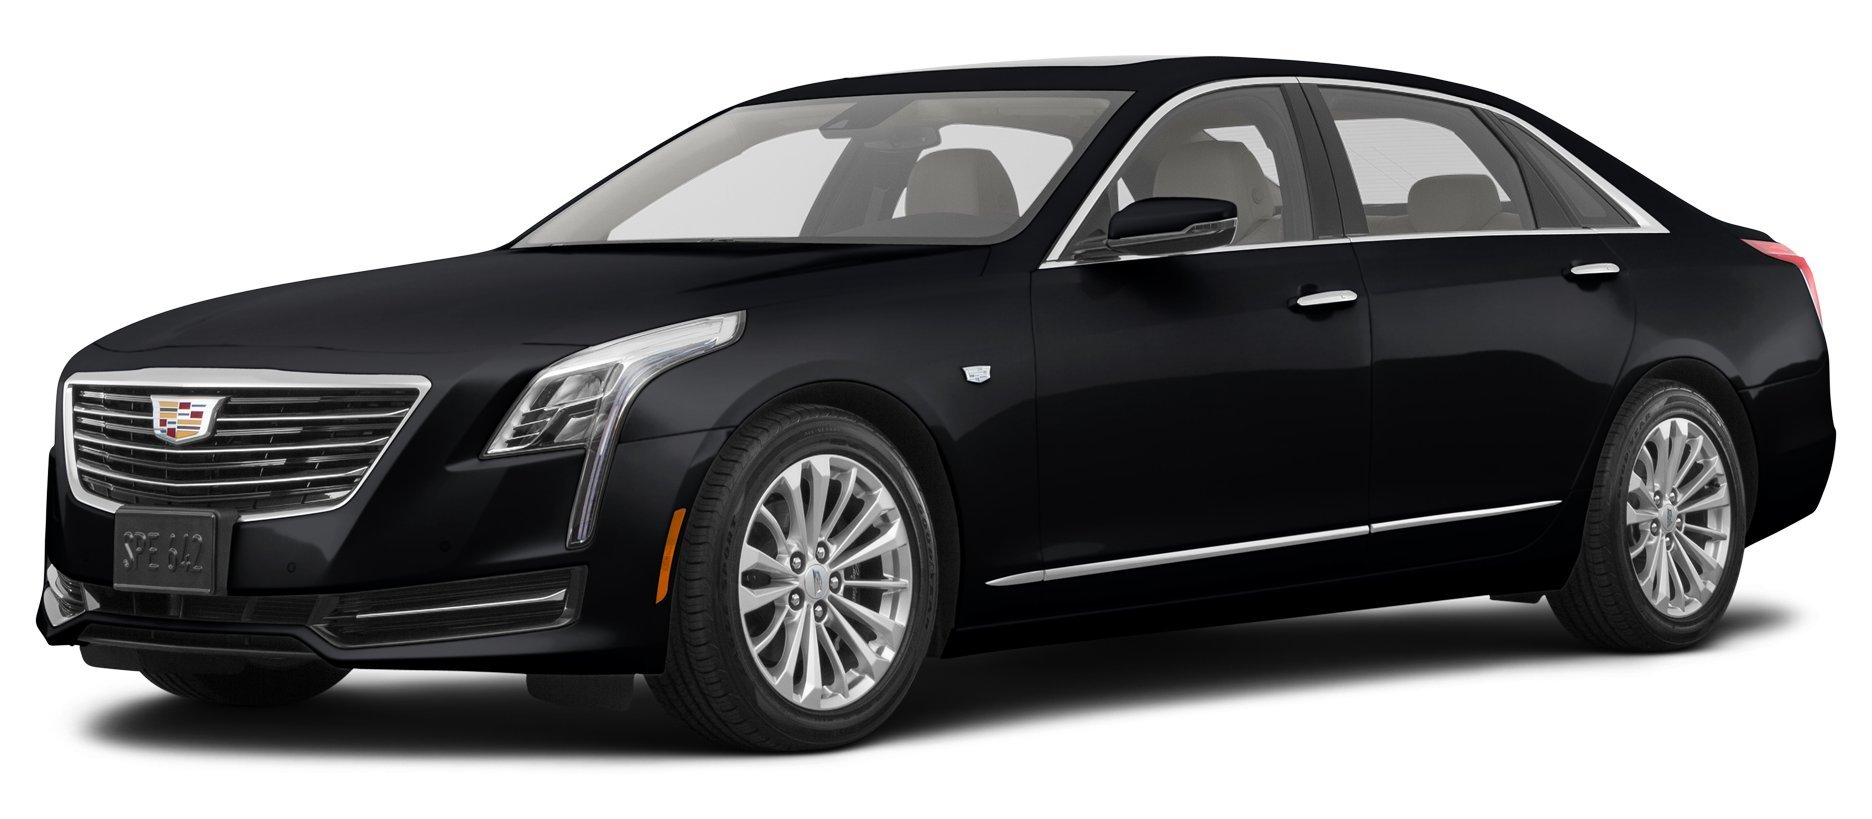 2017 lincoln continental reviews images and specs vehicles. Black Bedroom Furniture Sets. Home Design Ideas